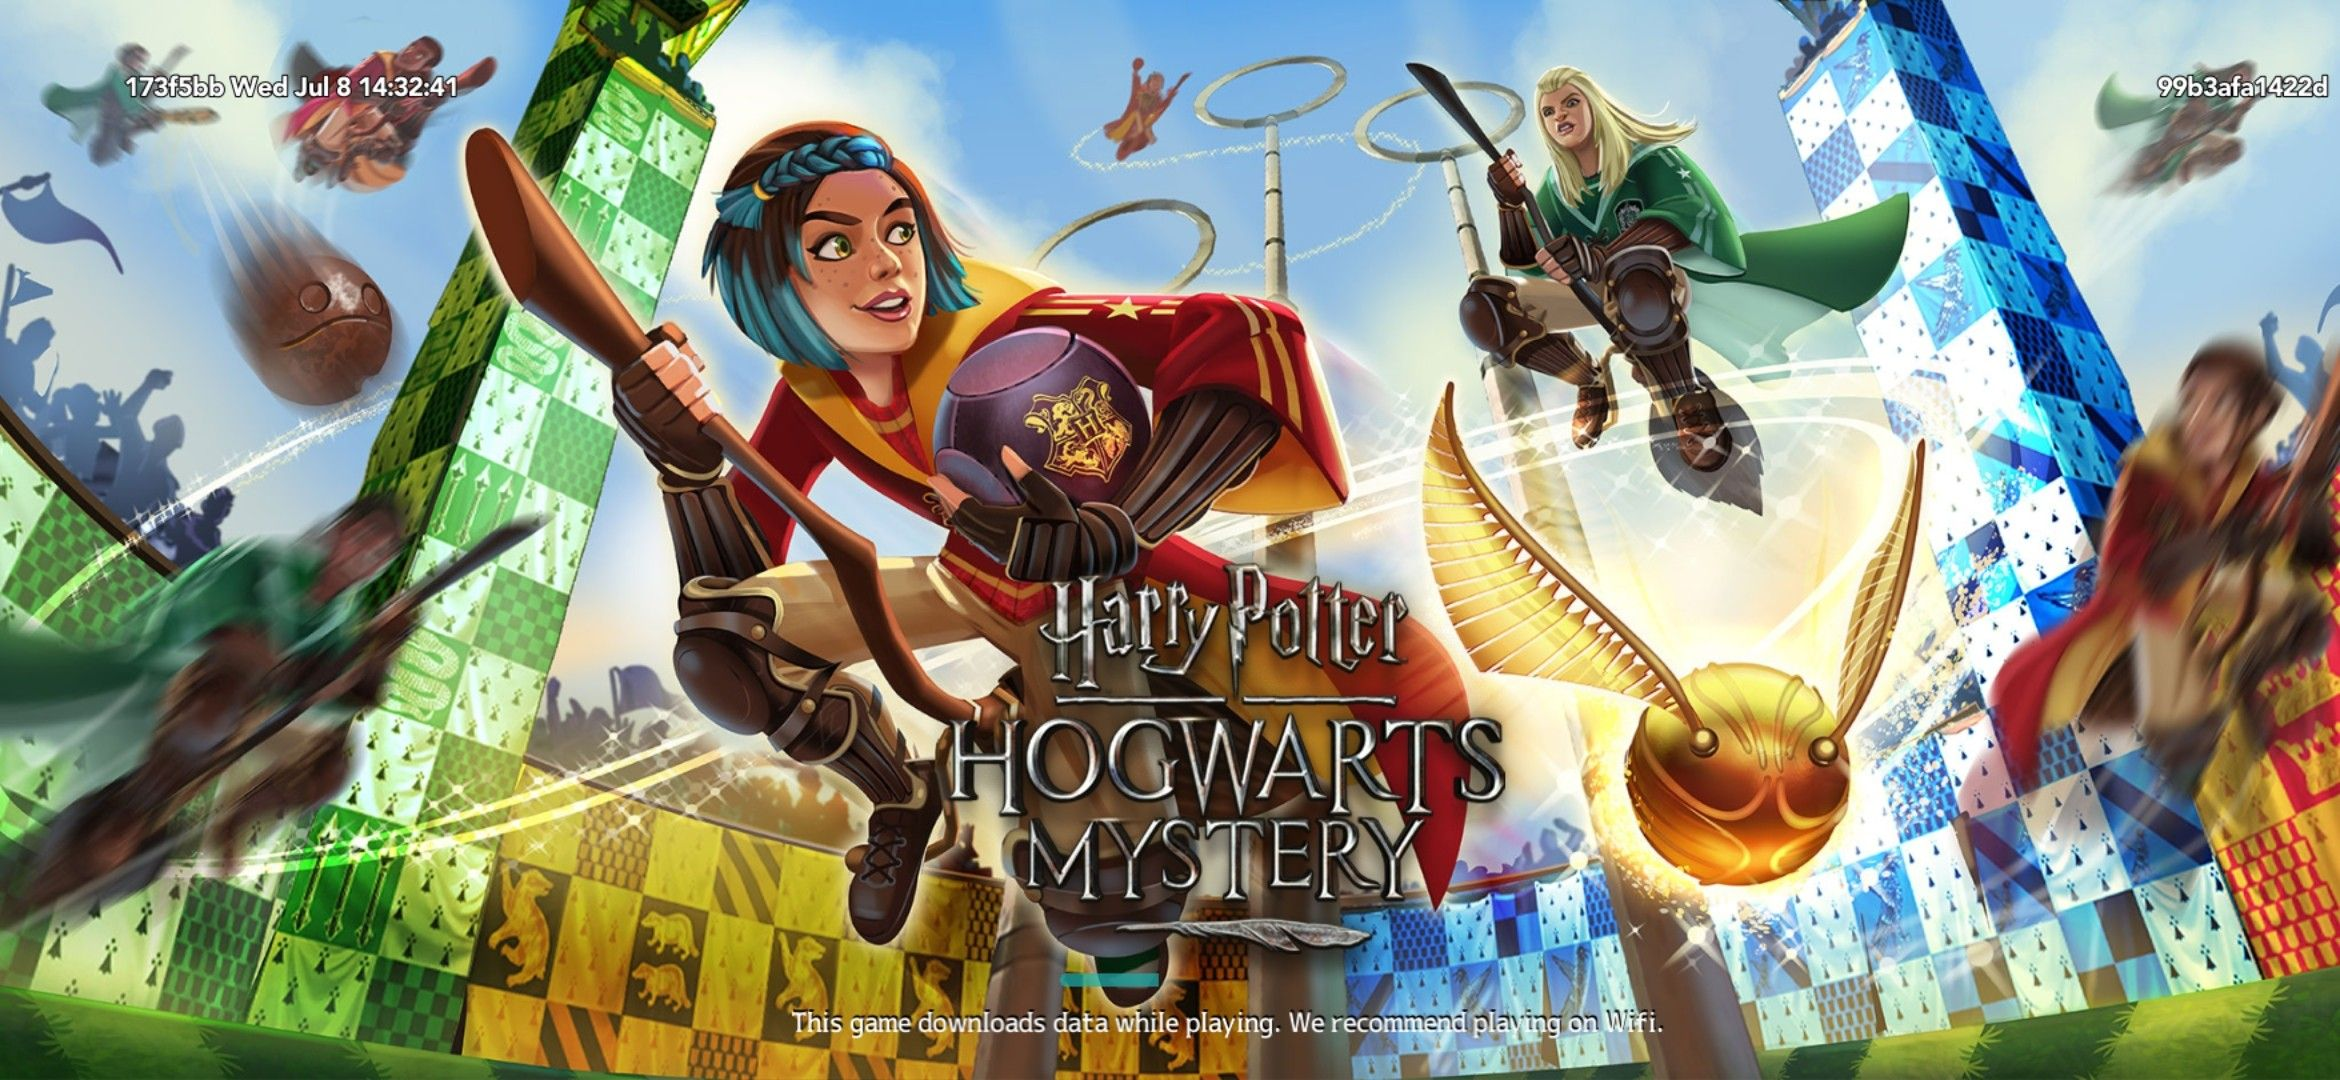 The Quidditch Cup Your Third House Match Will Decide If Your Team Wins The Quidditch Cup Hogwarts Mystery Hogwarts Harry Potter